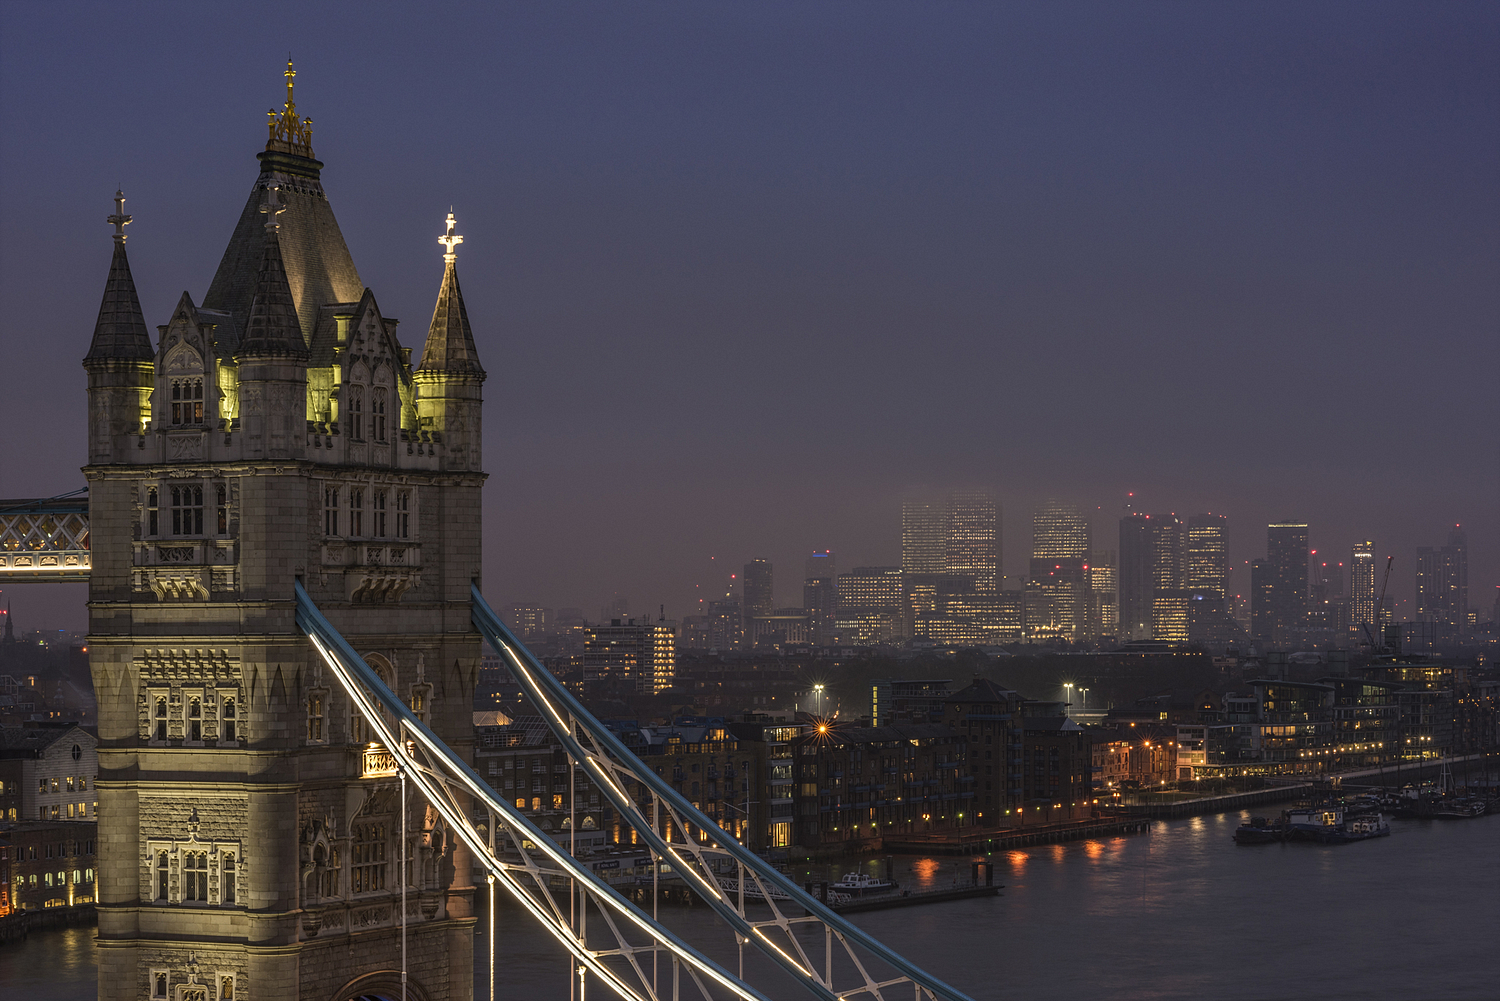 London skyline with Tower Bridge at night